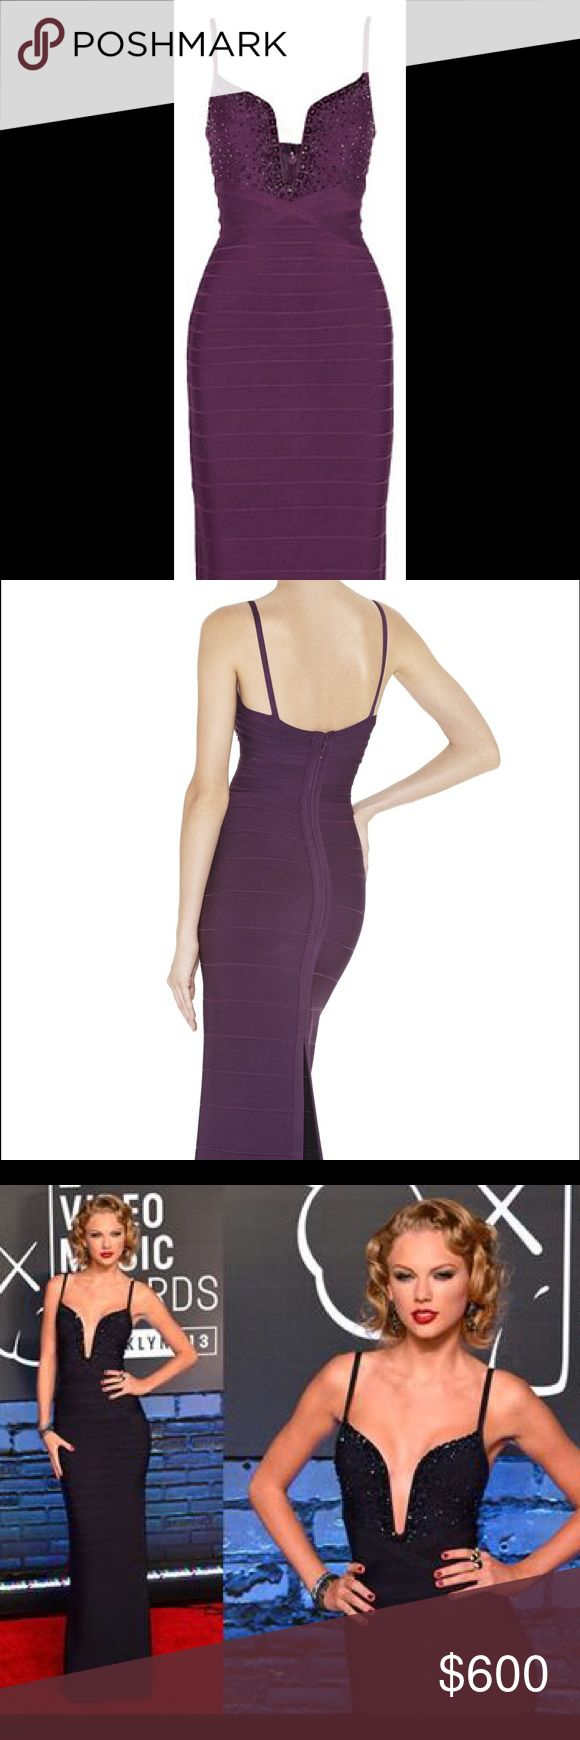 NWT Authentic Herve Leger Gown NWT never worn Herve Leger full length gown. It was purchased at the Herve Leger store in Beverly Hills and still has the tag and serial number that came with the purchase. Same design worn by celebrities like Taylor Swift. Size fits a 2-4. Herve Leger Dresses Prom